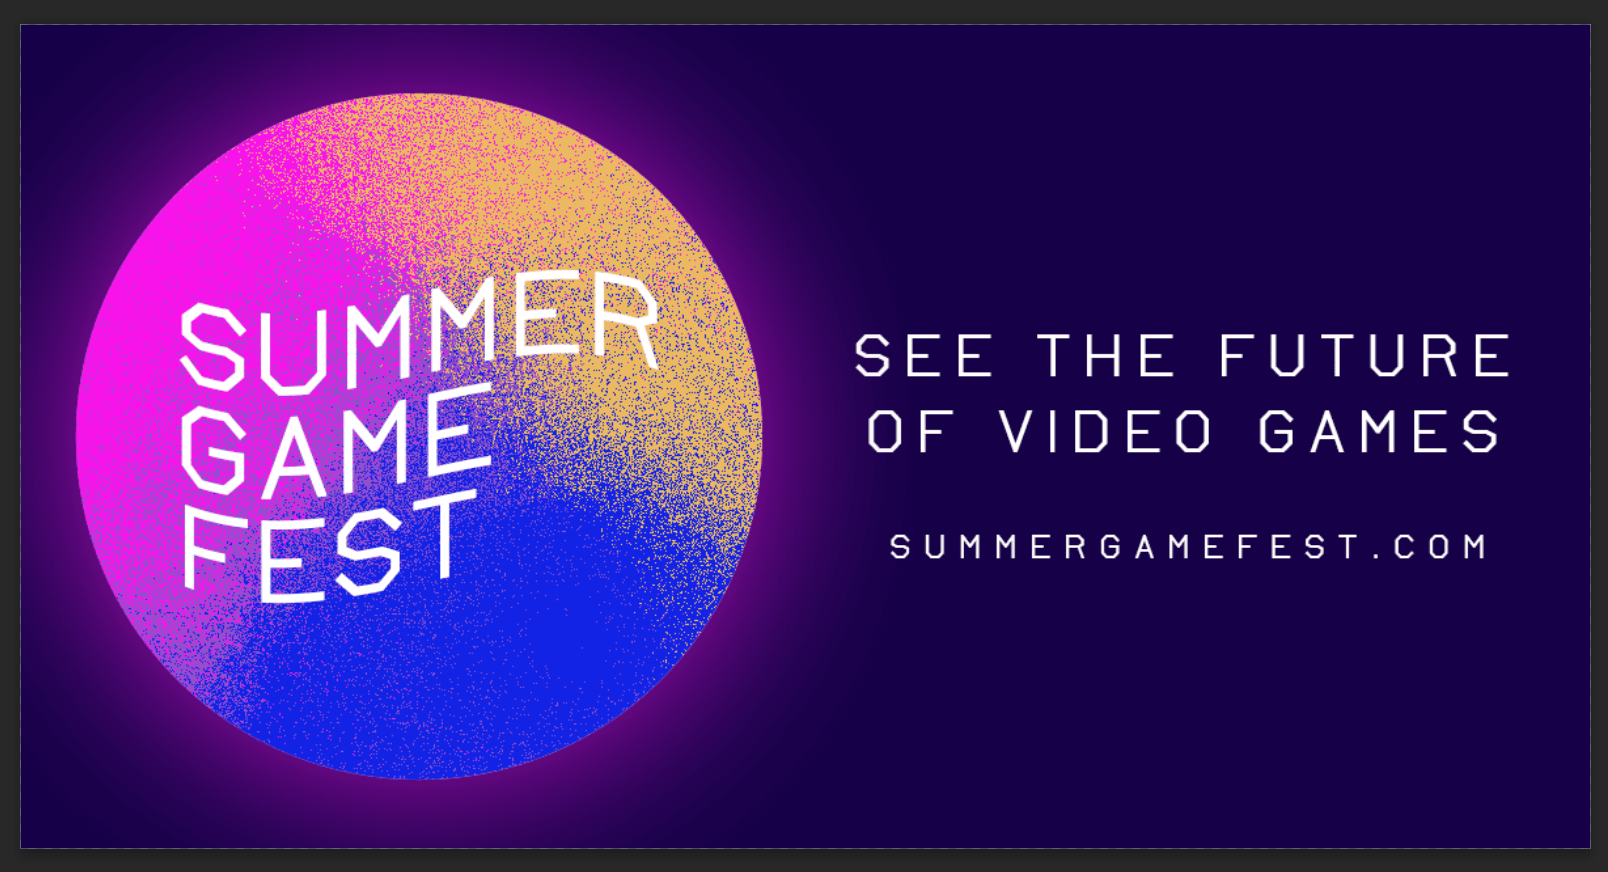 Summer Game Fest Kickoff Live: Start time, how to watch, what to expect -  CNET